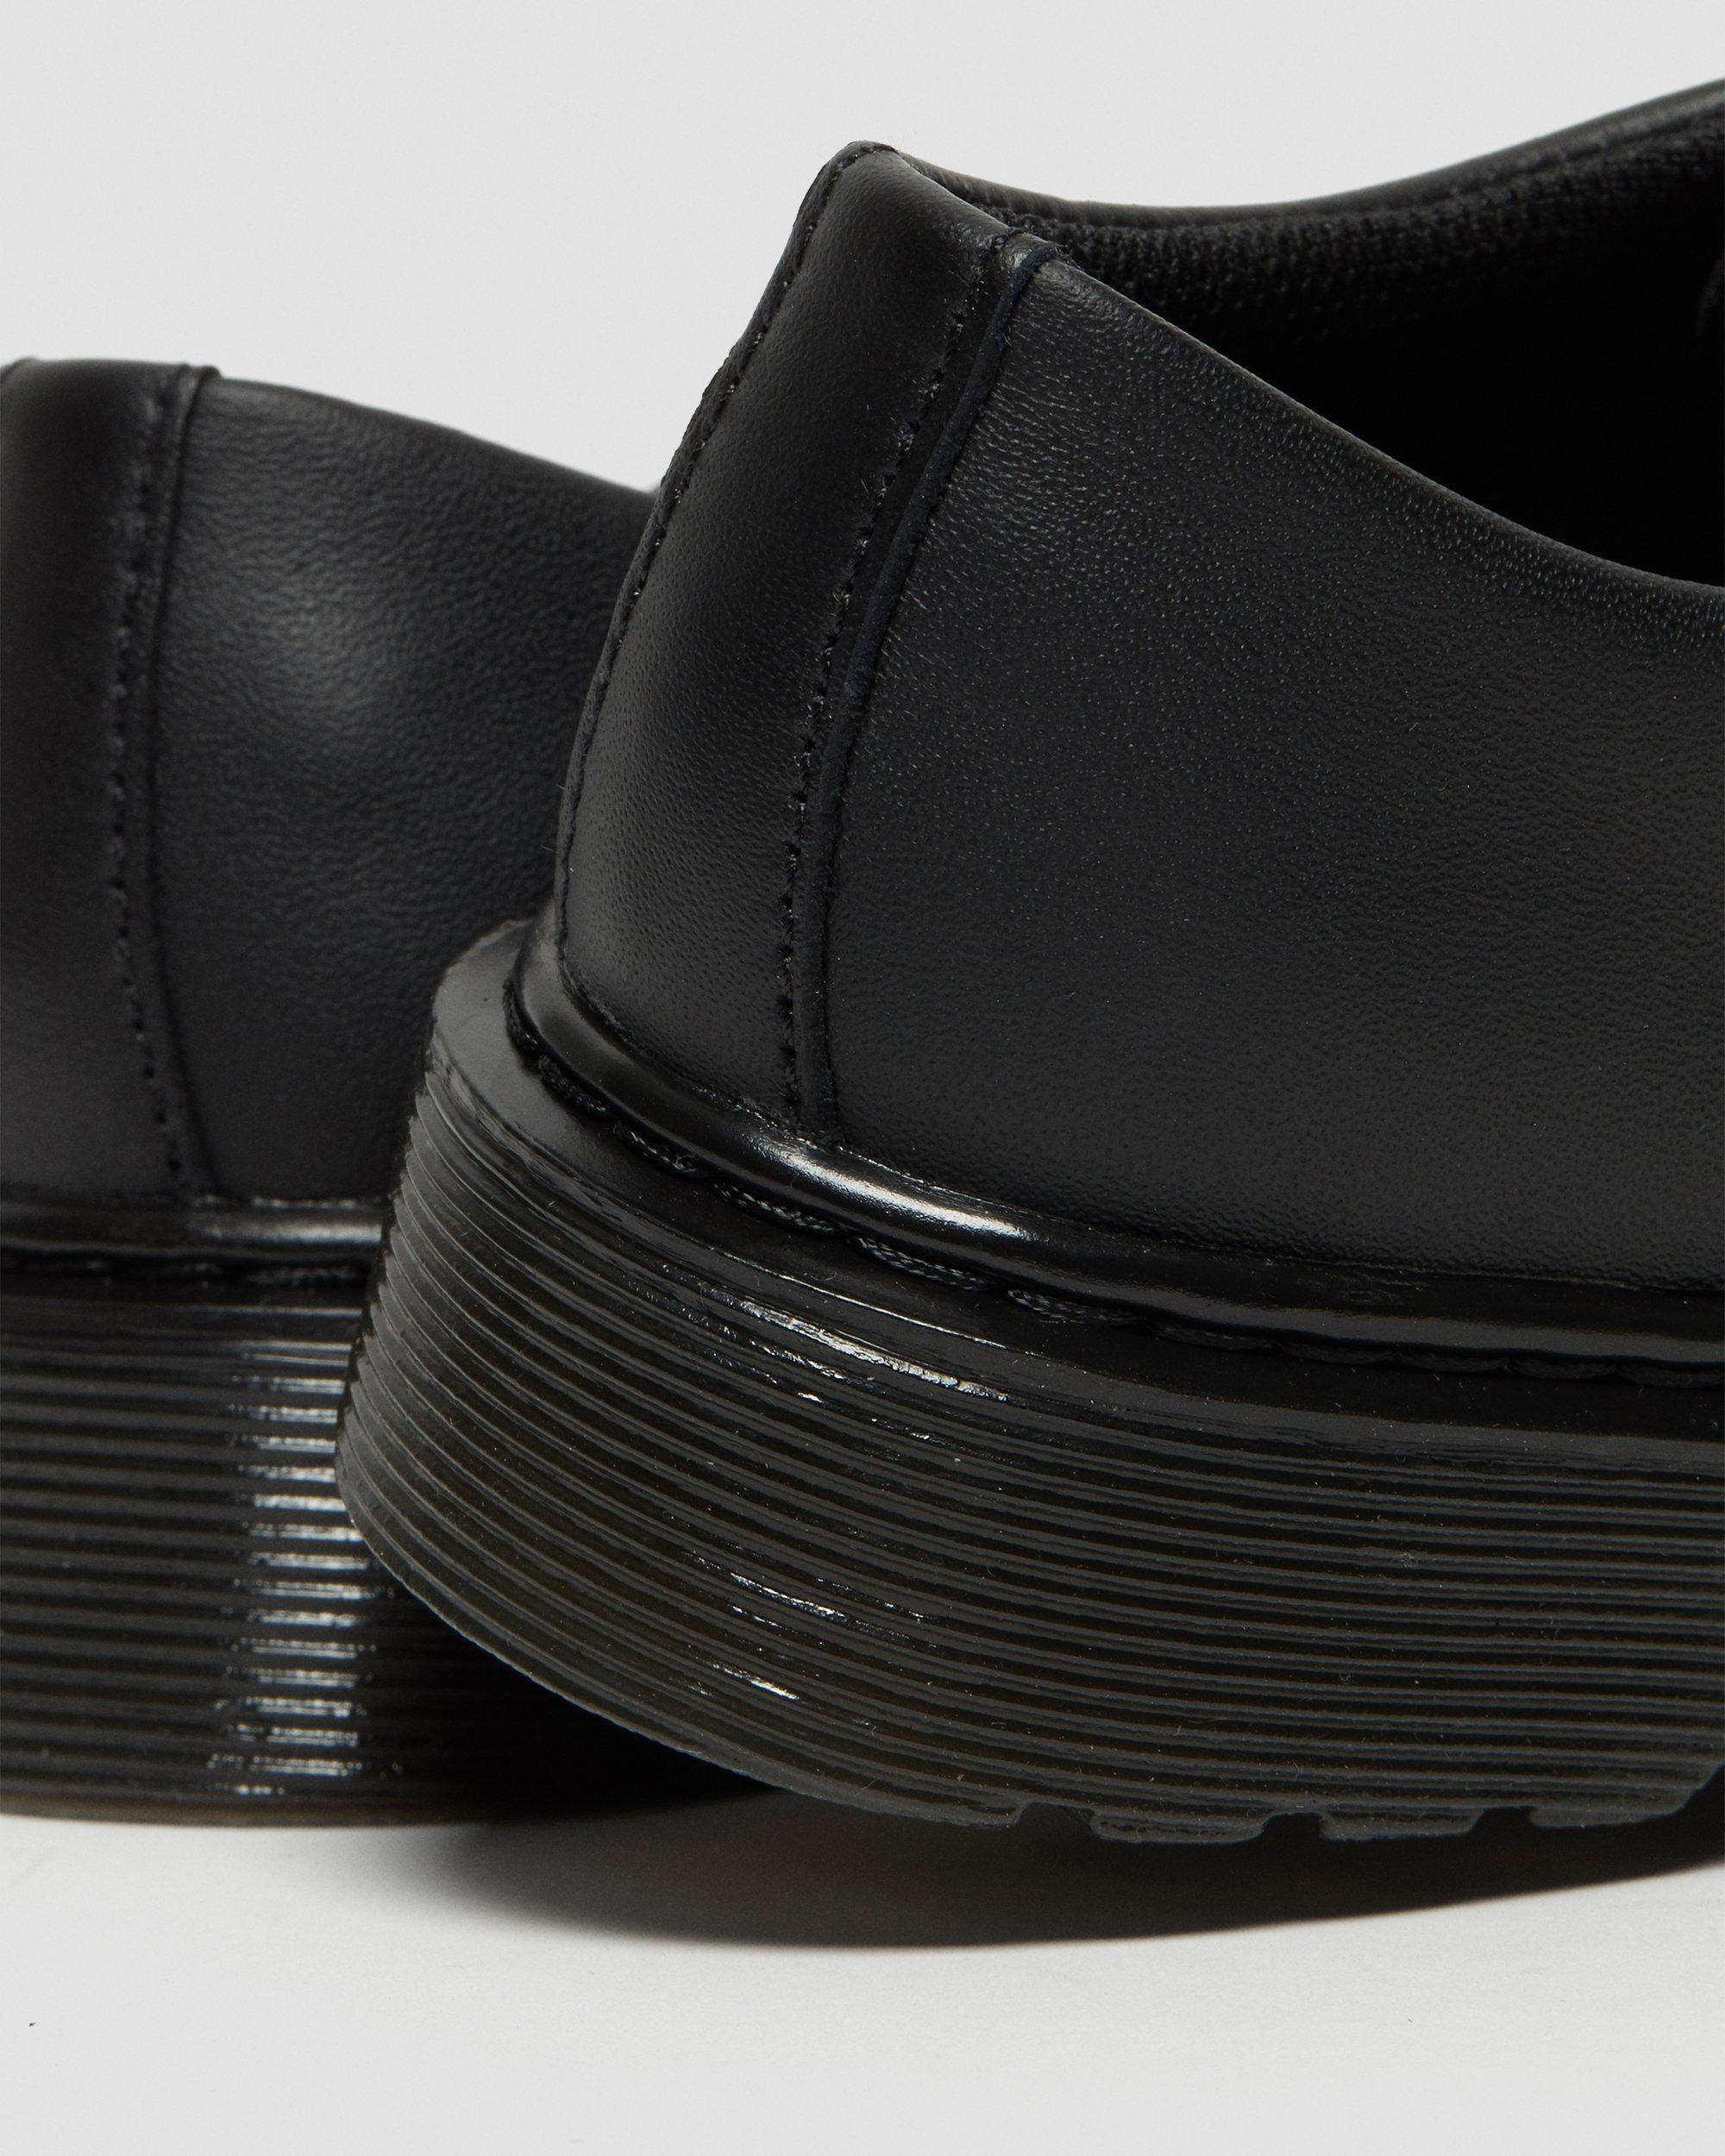 JUNIOR 1461 MONO SOFTY T LEATHER SHOES